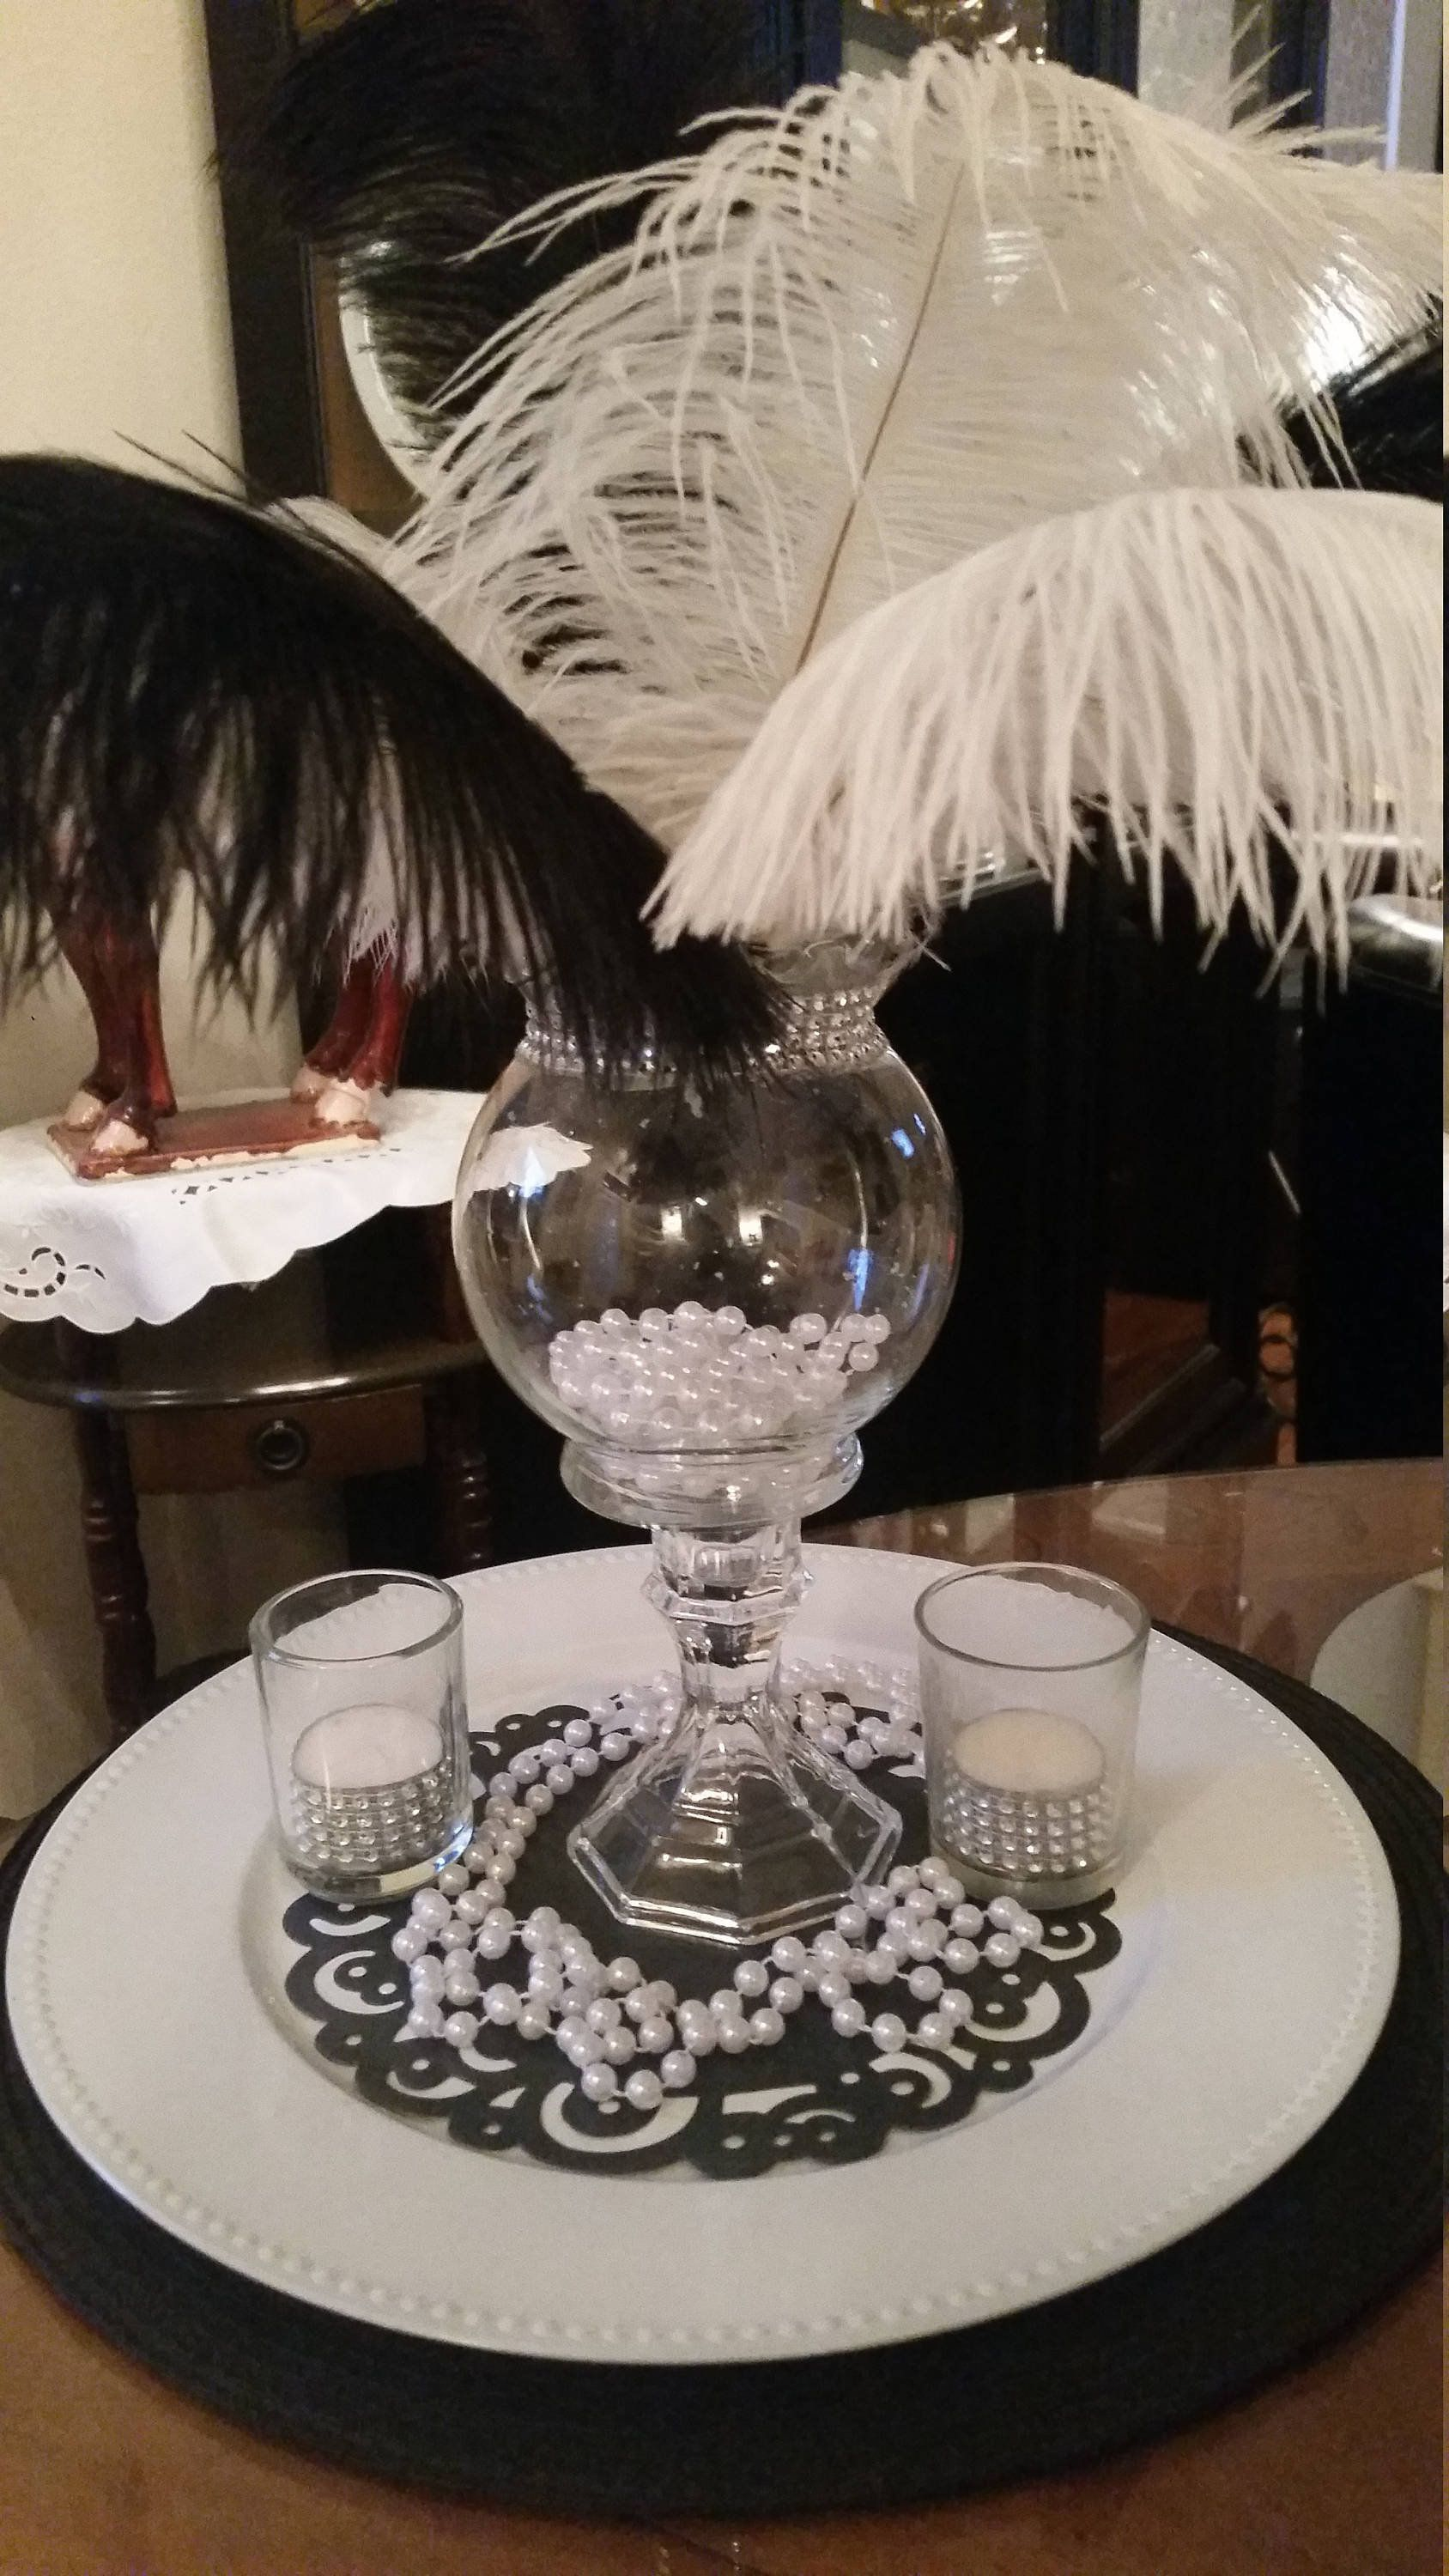 Gatsby Black and White Ostrich Feather Centerpiece-Ostrich Feathers-Sweet 16-Quinceanera-Prom-Wedding-Gatsy-Roaring 20s--Birthday #sweet16centerpieces